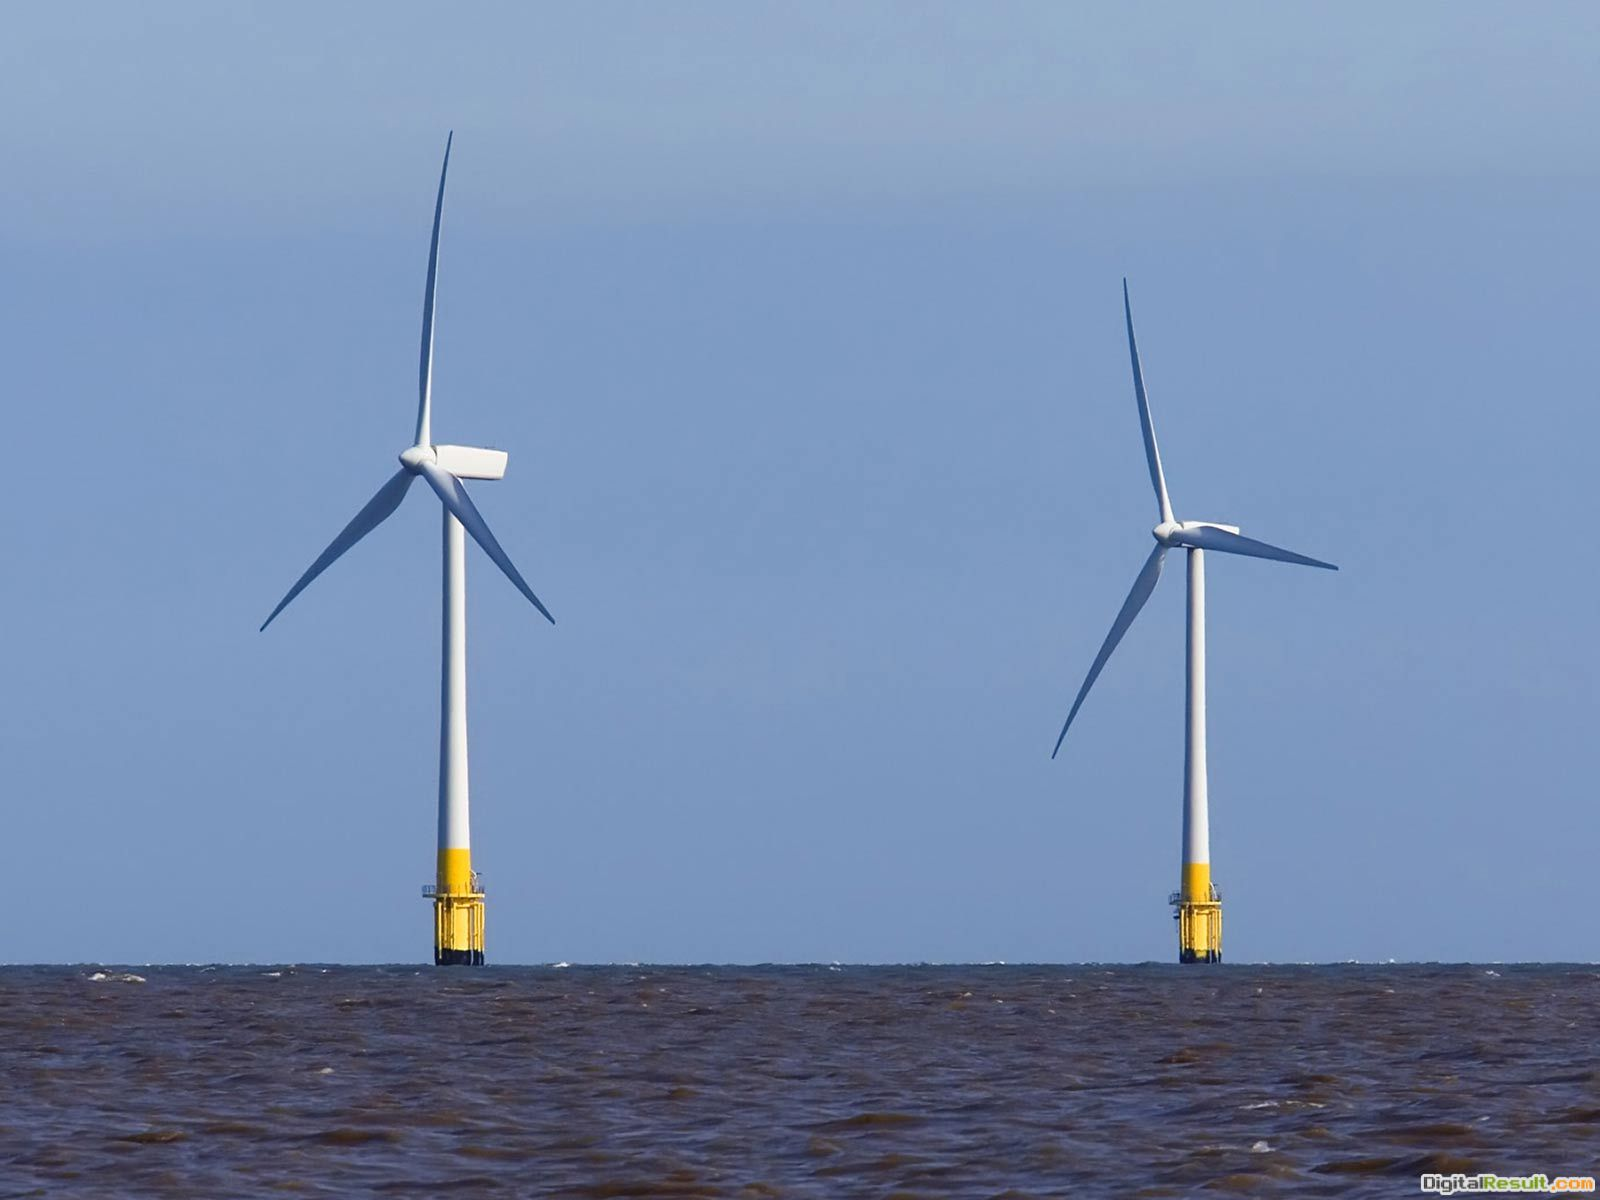 Desktop Wallpaper of a two large wind turbines in the sea off the UK 1529